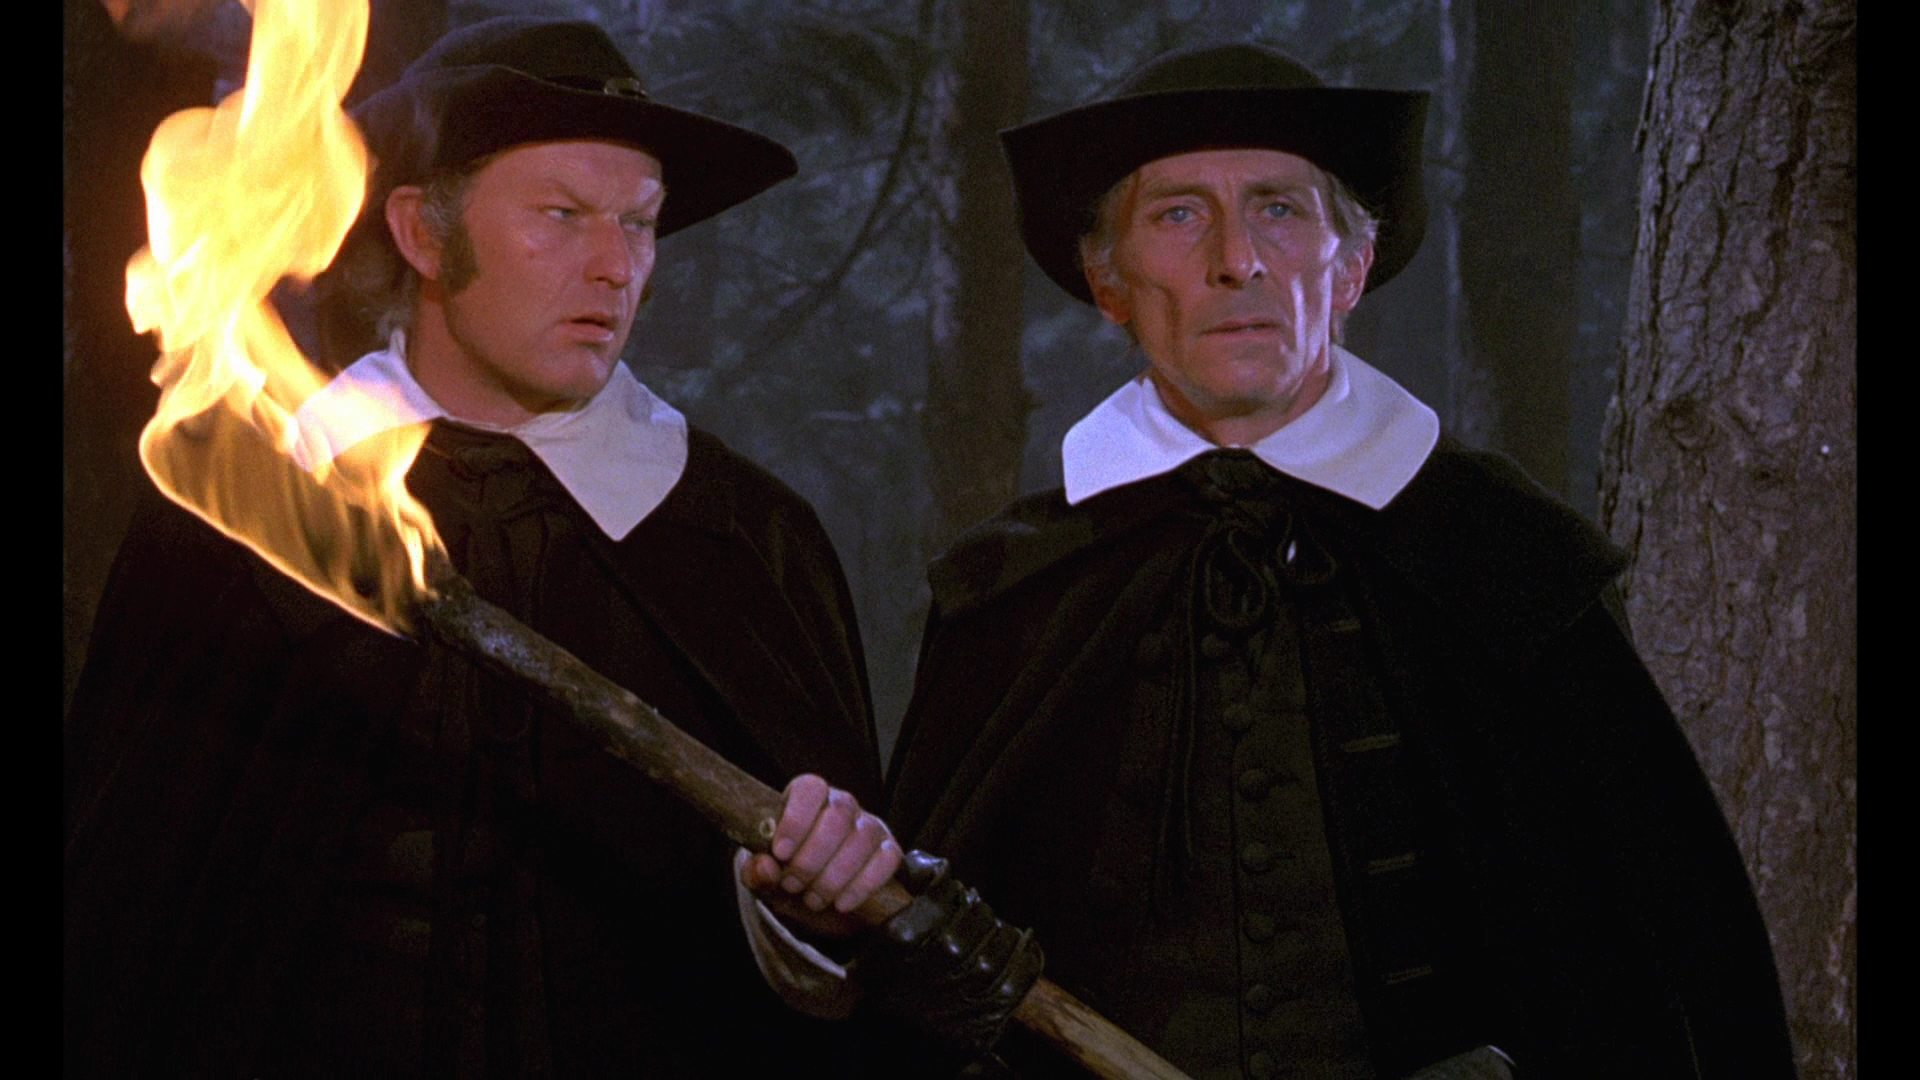 http://sinsofcinema.com/Images/Twins-of-Evil/Twins-of-Evil-Blu-Ray.jpg